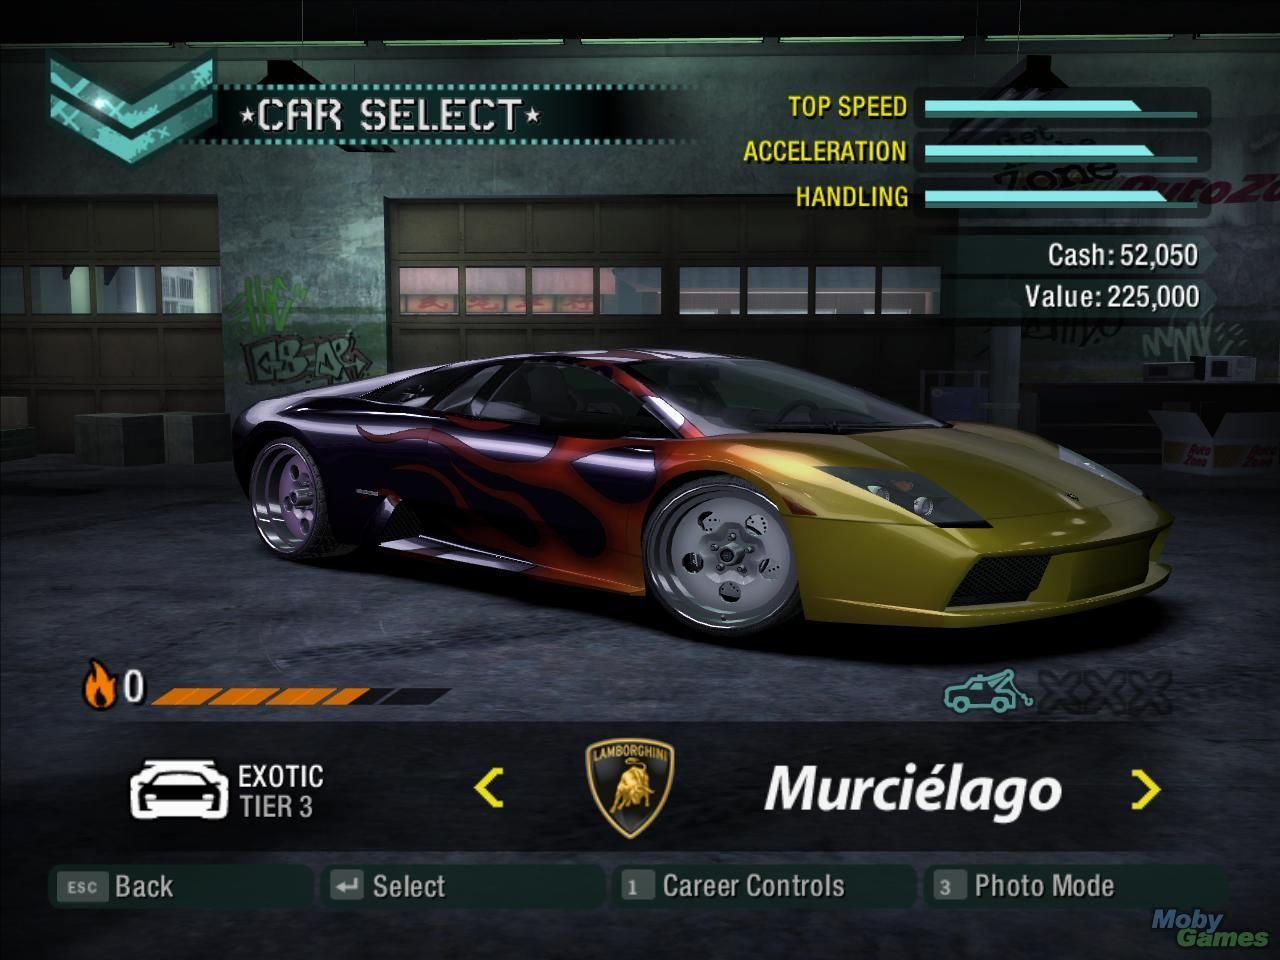 Need For Speed Carbon Windows Car Selection Screen Have You Ever Seen A Lamborghini More Tacky Than This One Car Need For Speed Games Need For Speed